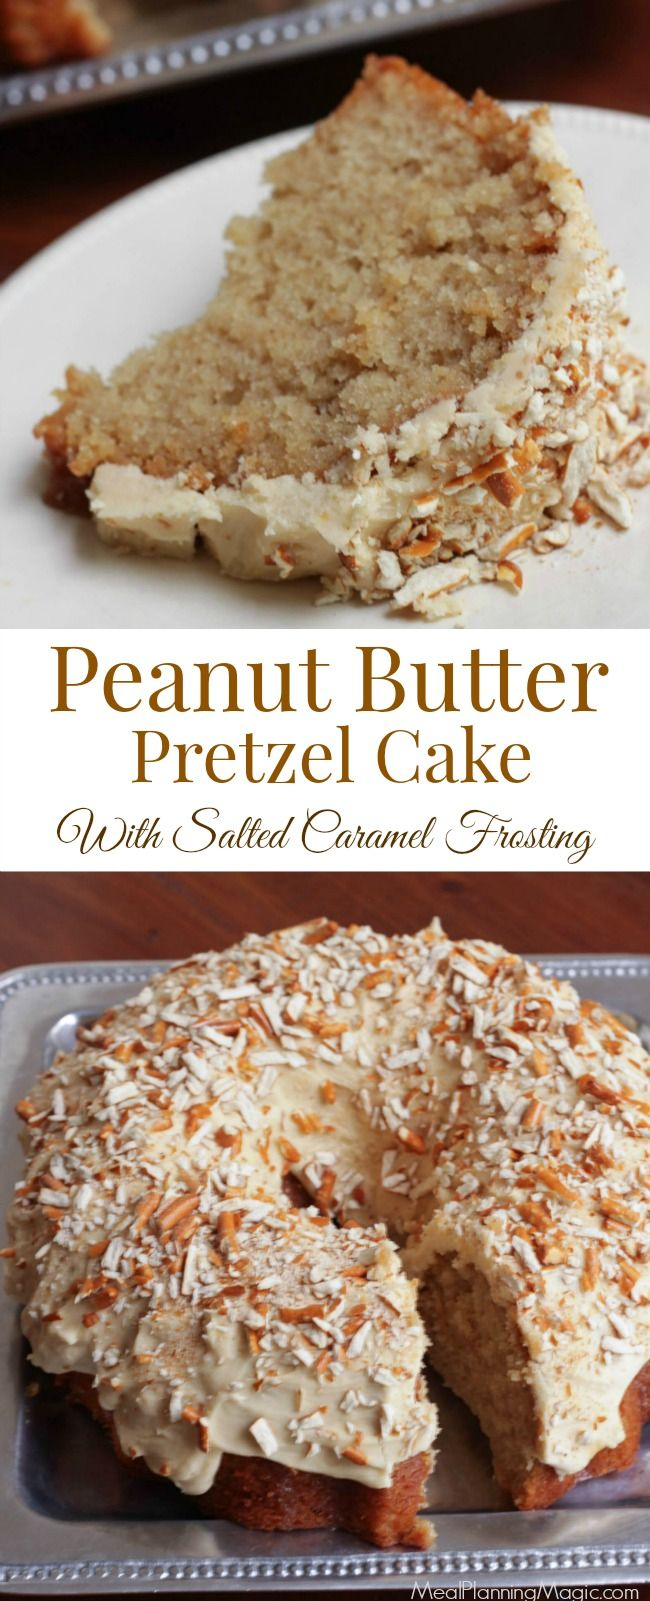 This Peanut Butter Pretzel Cake is filled with Salted Caramel Syrup and topped off with creamy Salted Caramel Frosting the sprinkled with crushed pretzels. And each step can be made ahead--making it a perfect peanut butter lover's cake if you ask me! #WeekdaySupper #CakeMagic #ad @workmanpub @thewrightcook http://www.mealplanningmagic.com/peanut-butter-pretzel-cake-weekdaysupper/